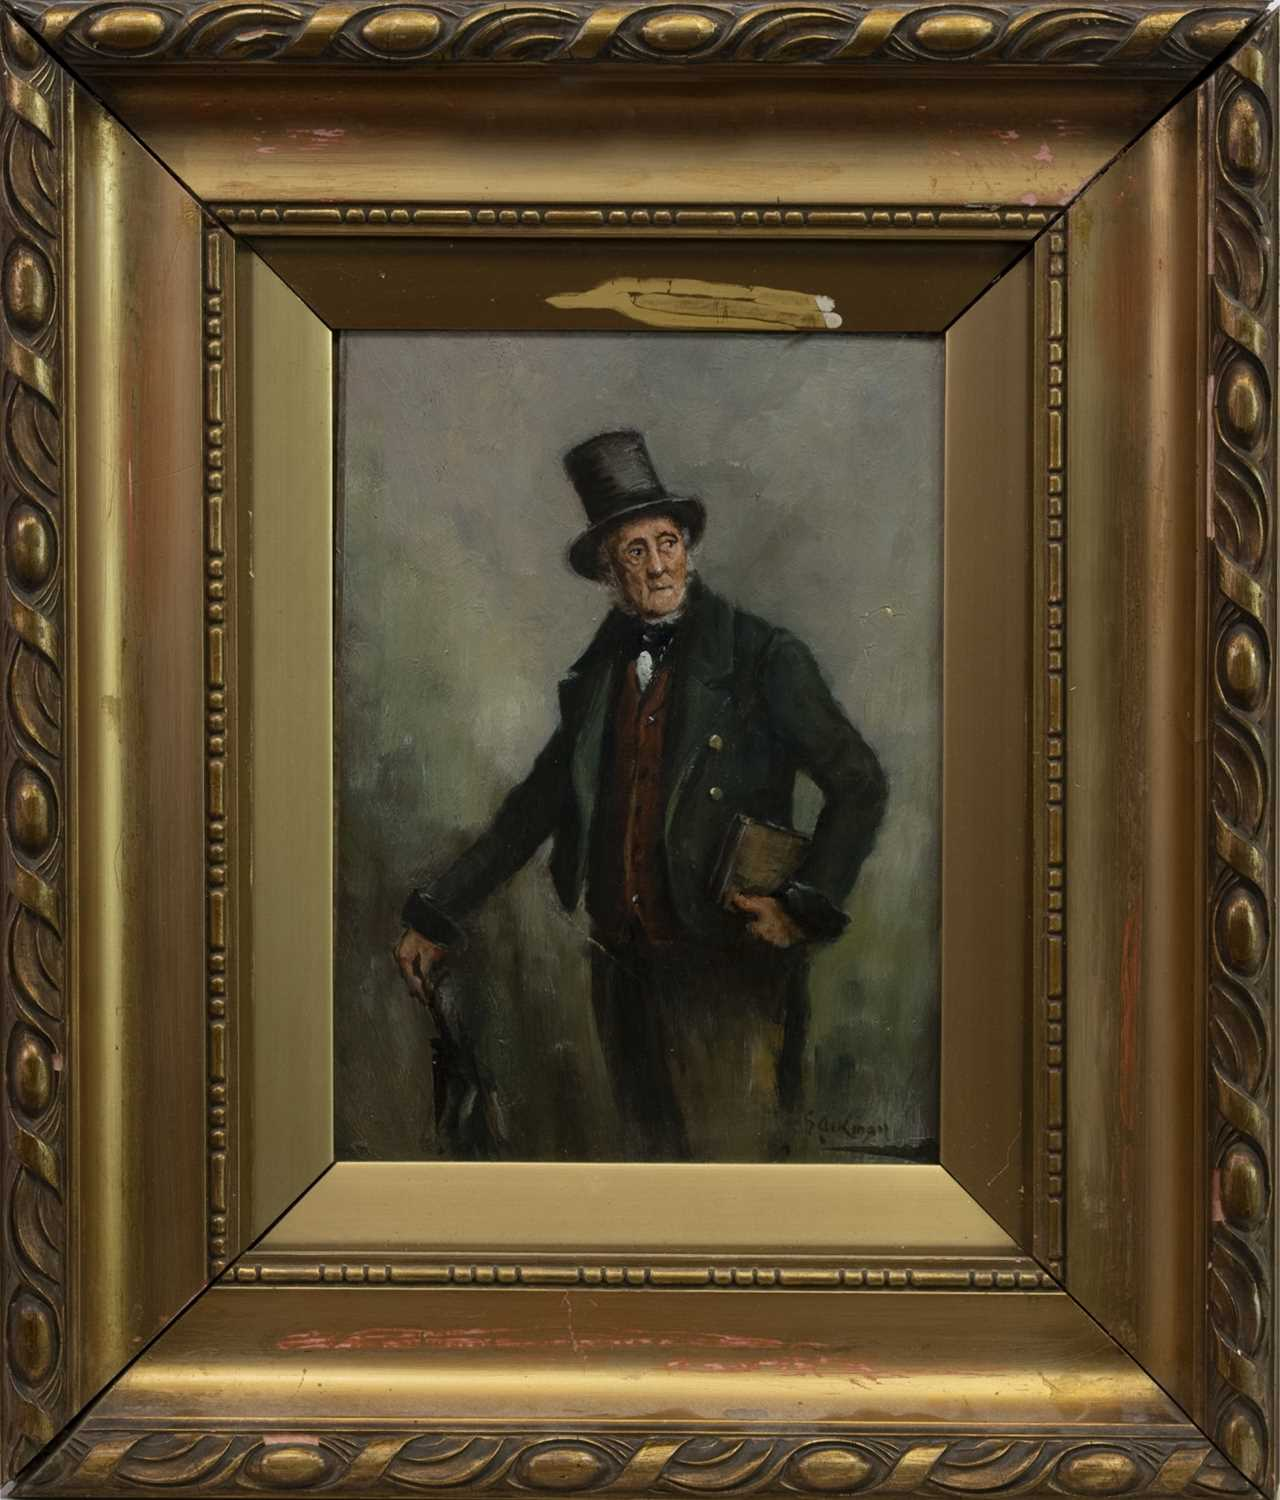 Lot 68 - PORTRAIT OF A GENTLEMAN, AN OIL BY GEORGE AIKMAN